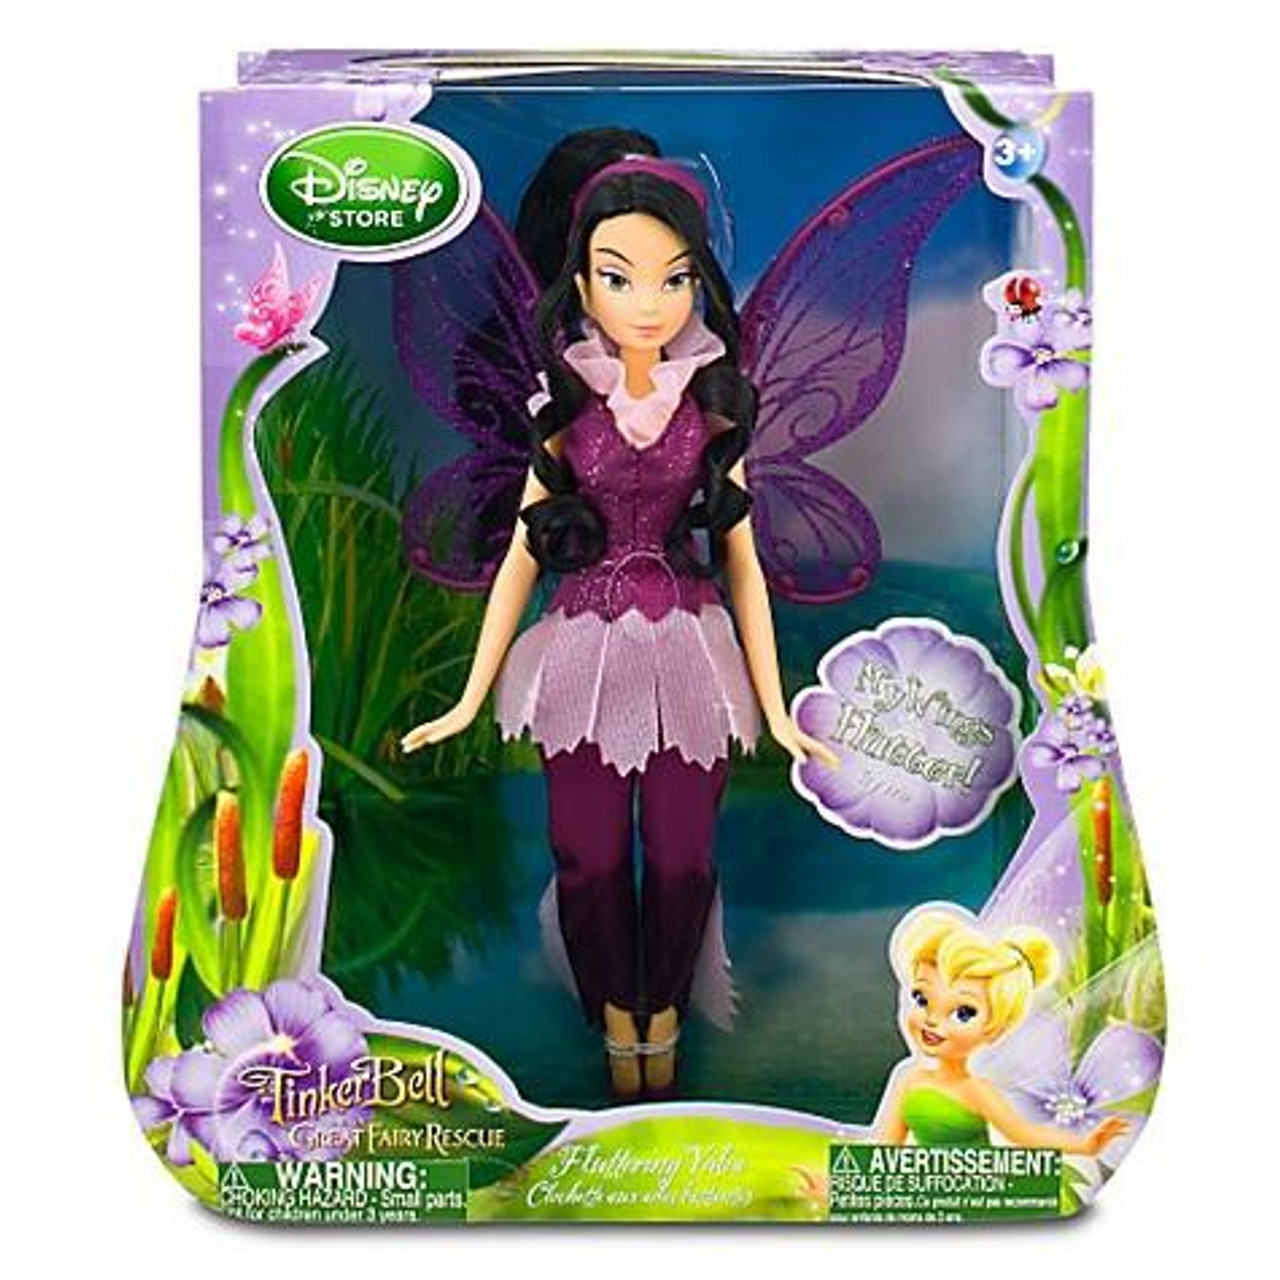 Disney Fairies Tinker Bell Great Fairy Rescue Fluttering Vidia Exclusive 10-Inch Doll